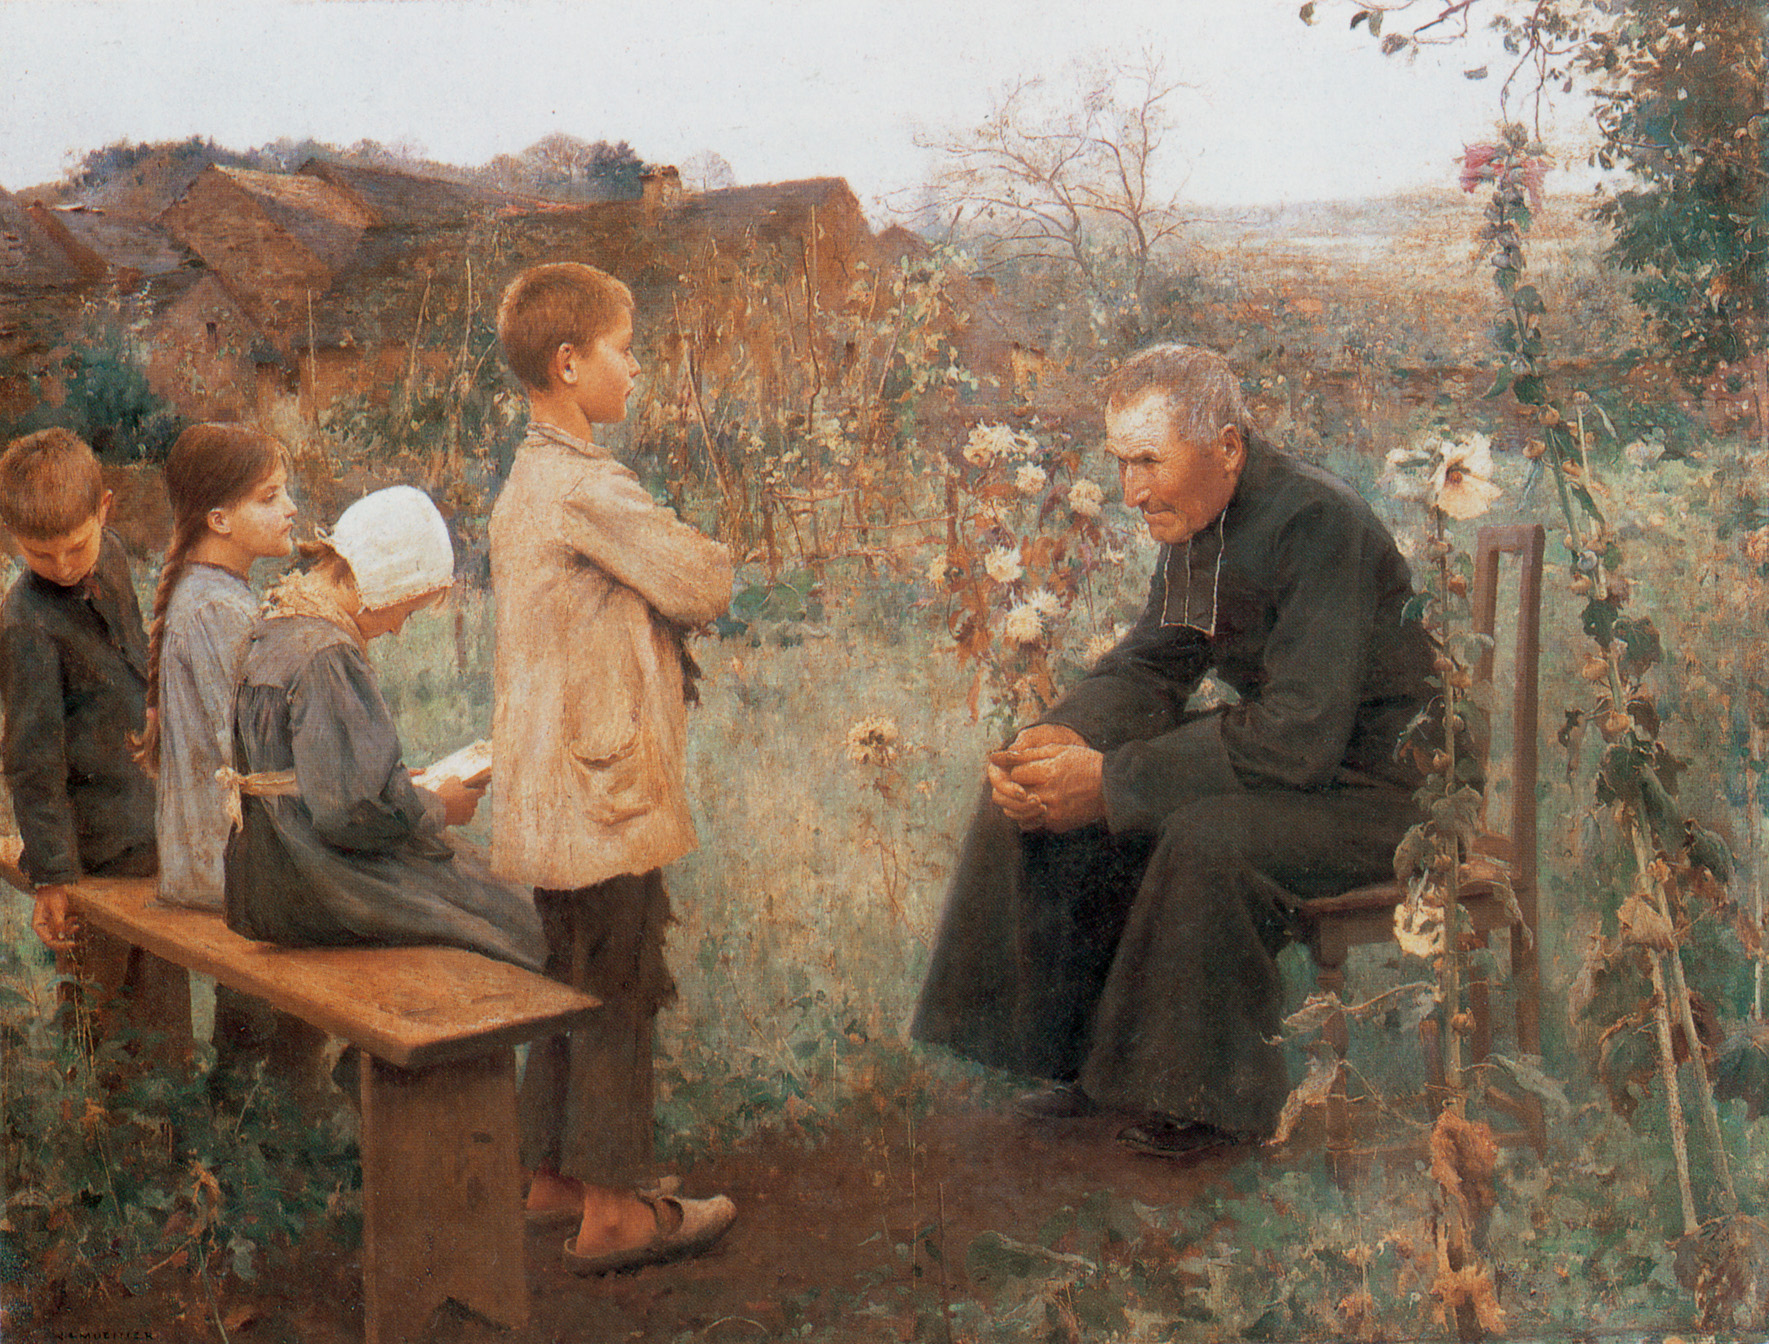 the importance of ecumenism The ecumenical councils of their doctrines have shaped the church for two millennia these important sessions serve to define the catholic faith, to protect the church from heresy and challenge.